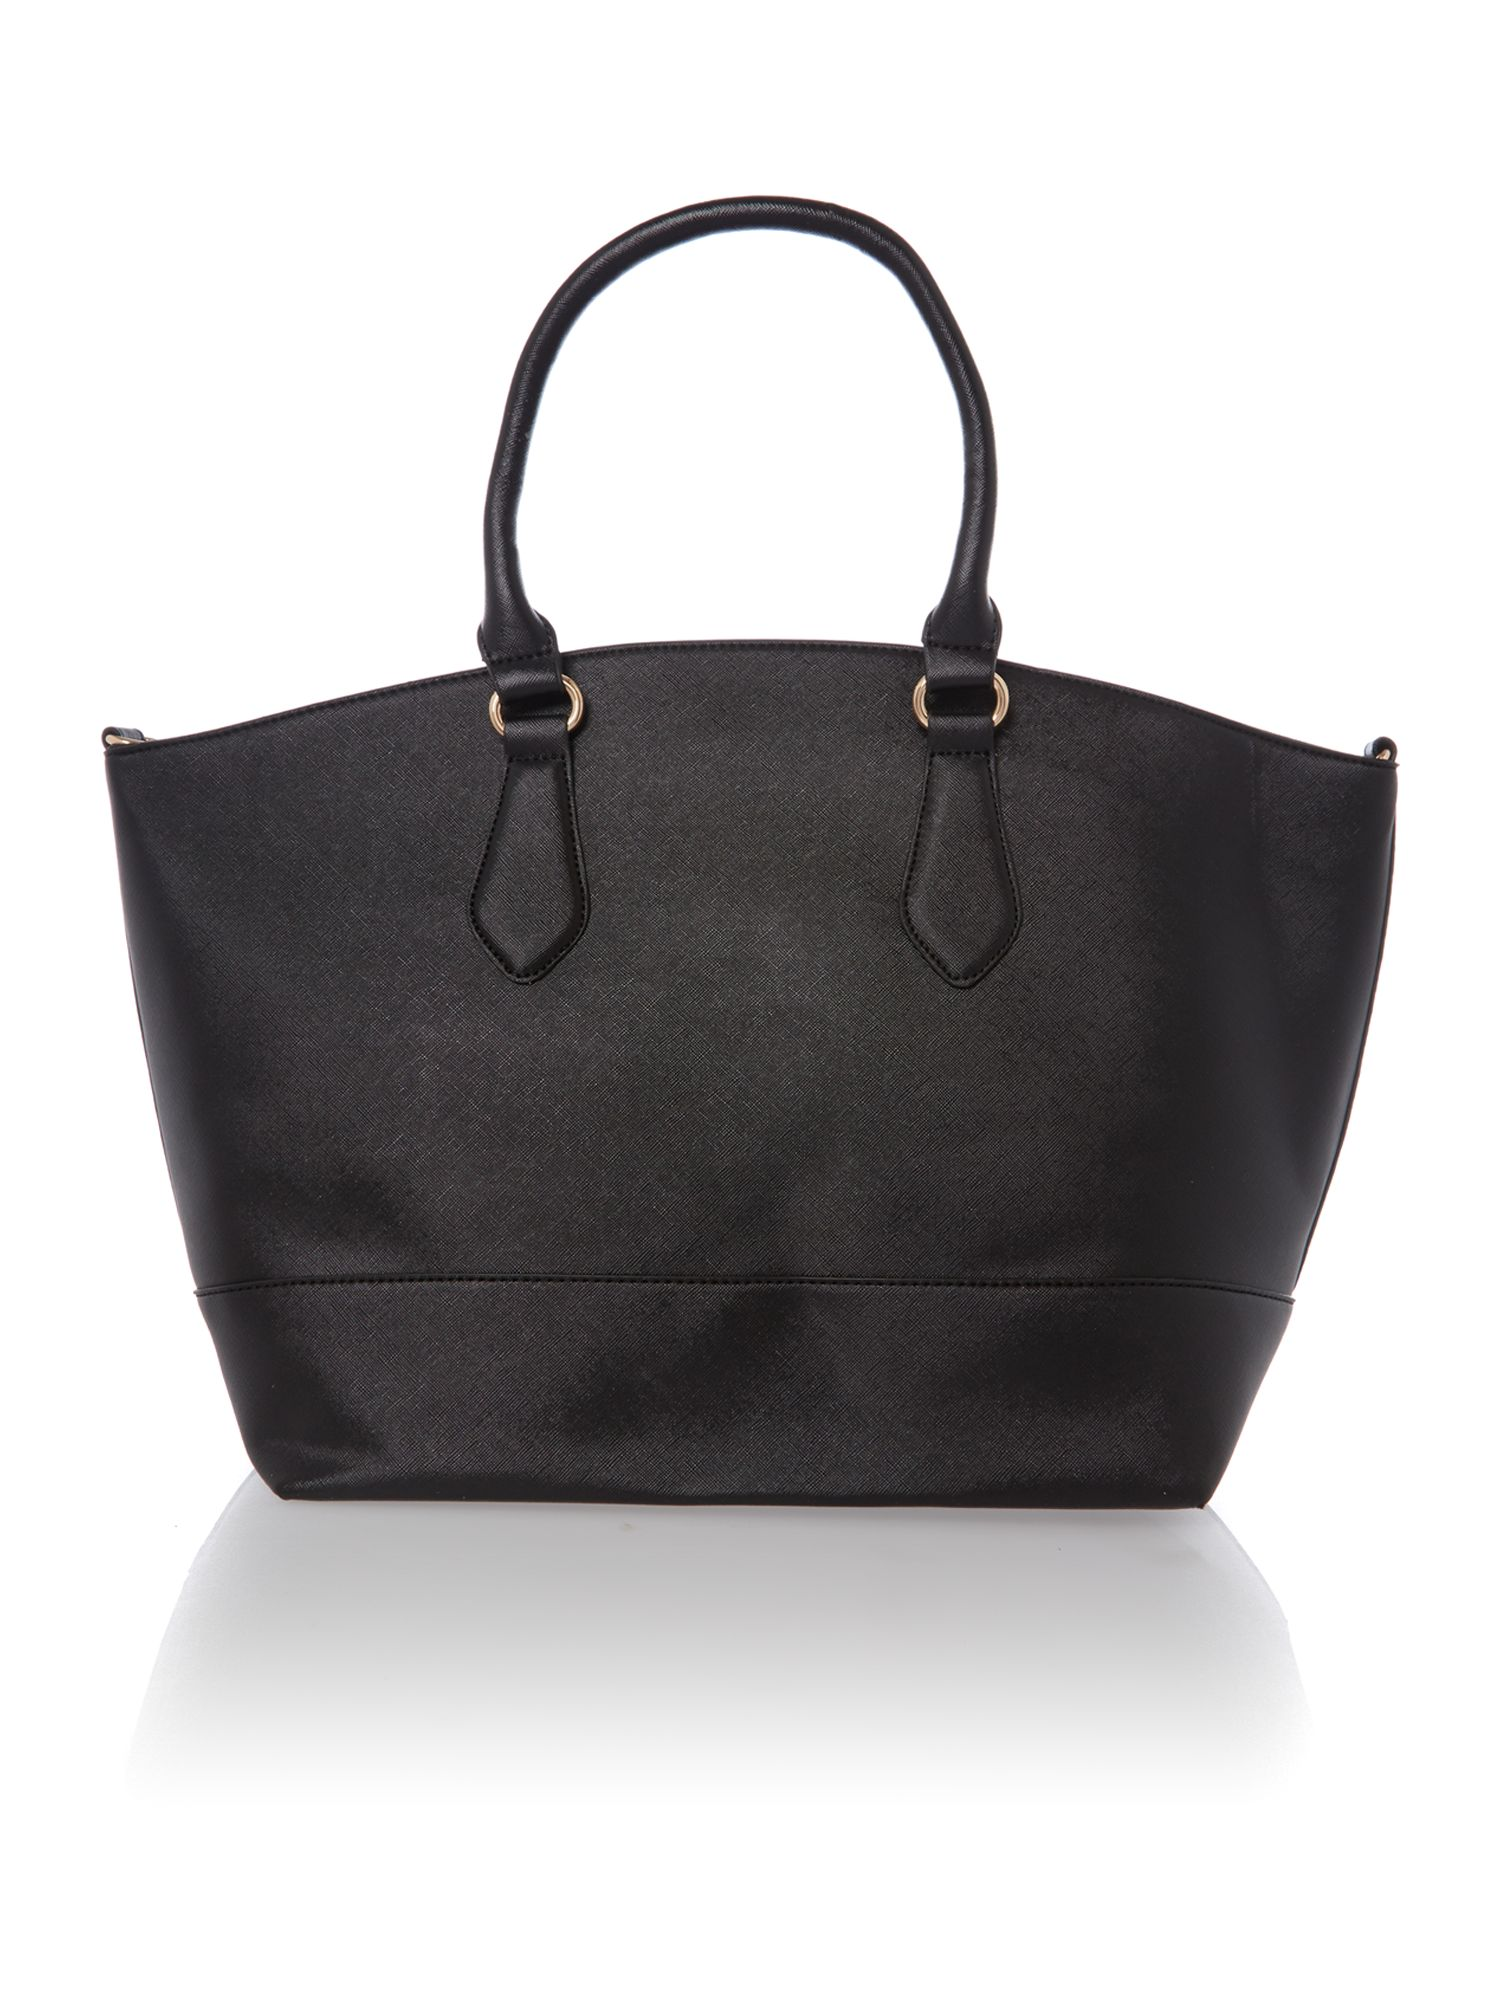 Eternity black large tote bag